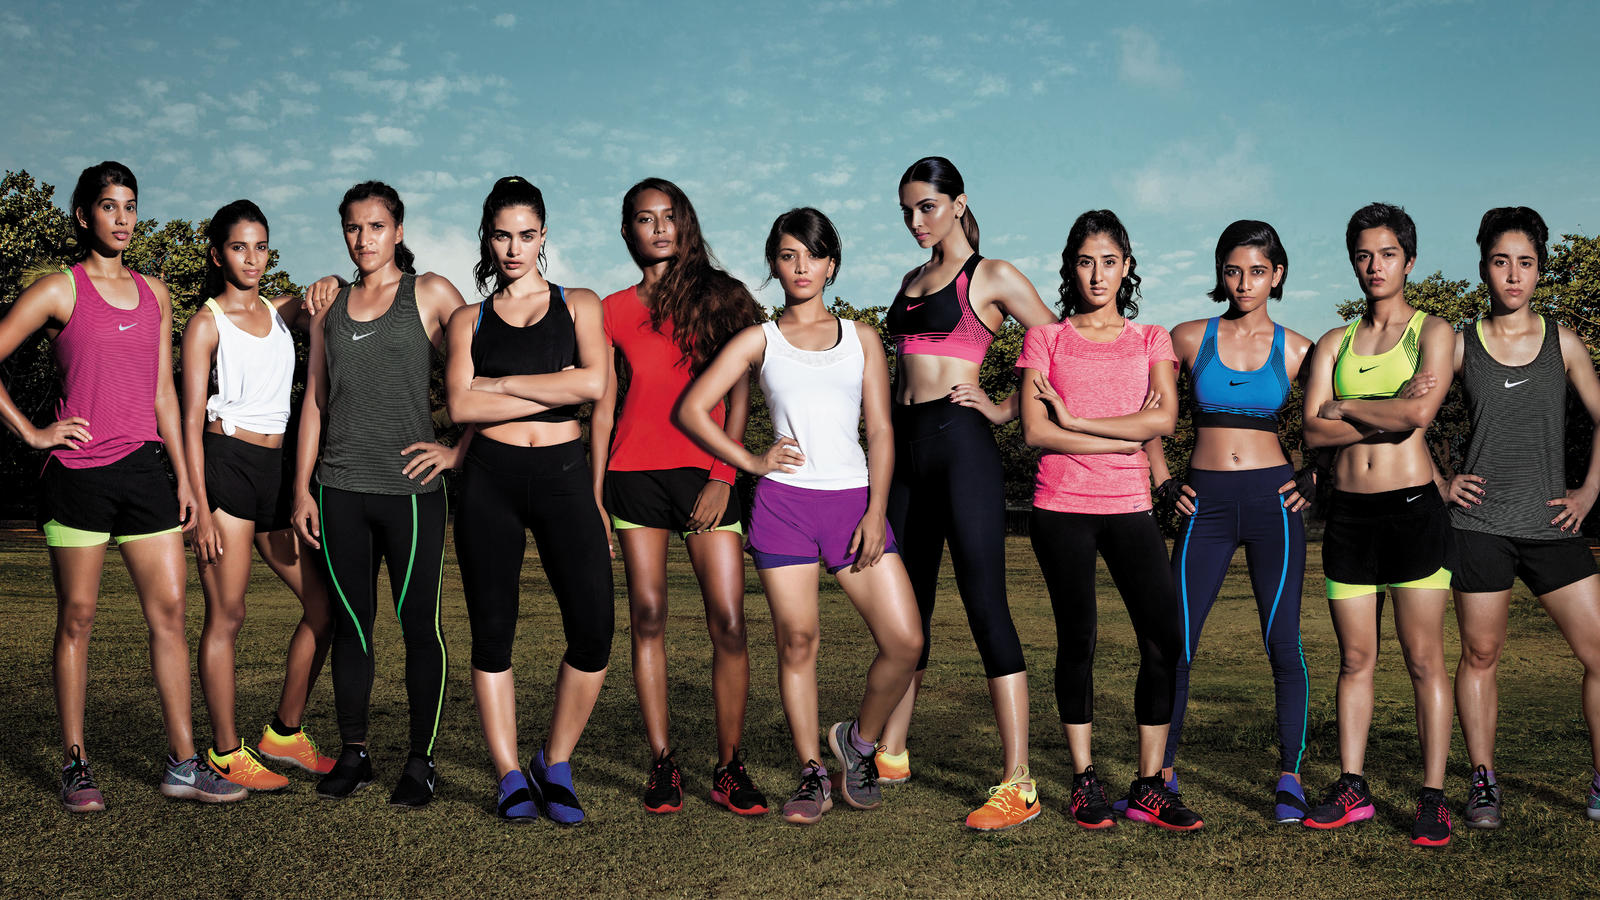 Girls Shoes Wallpaper Ad Of The Day W K India S First Nike Ad Celebrates The